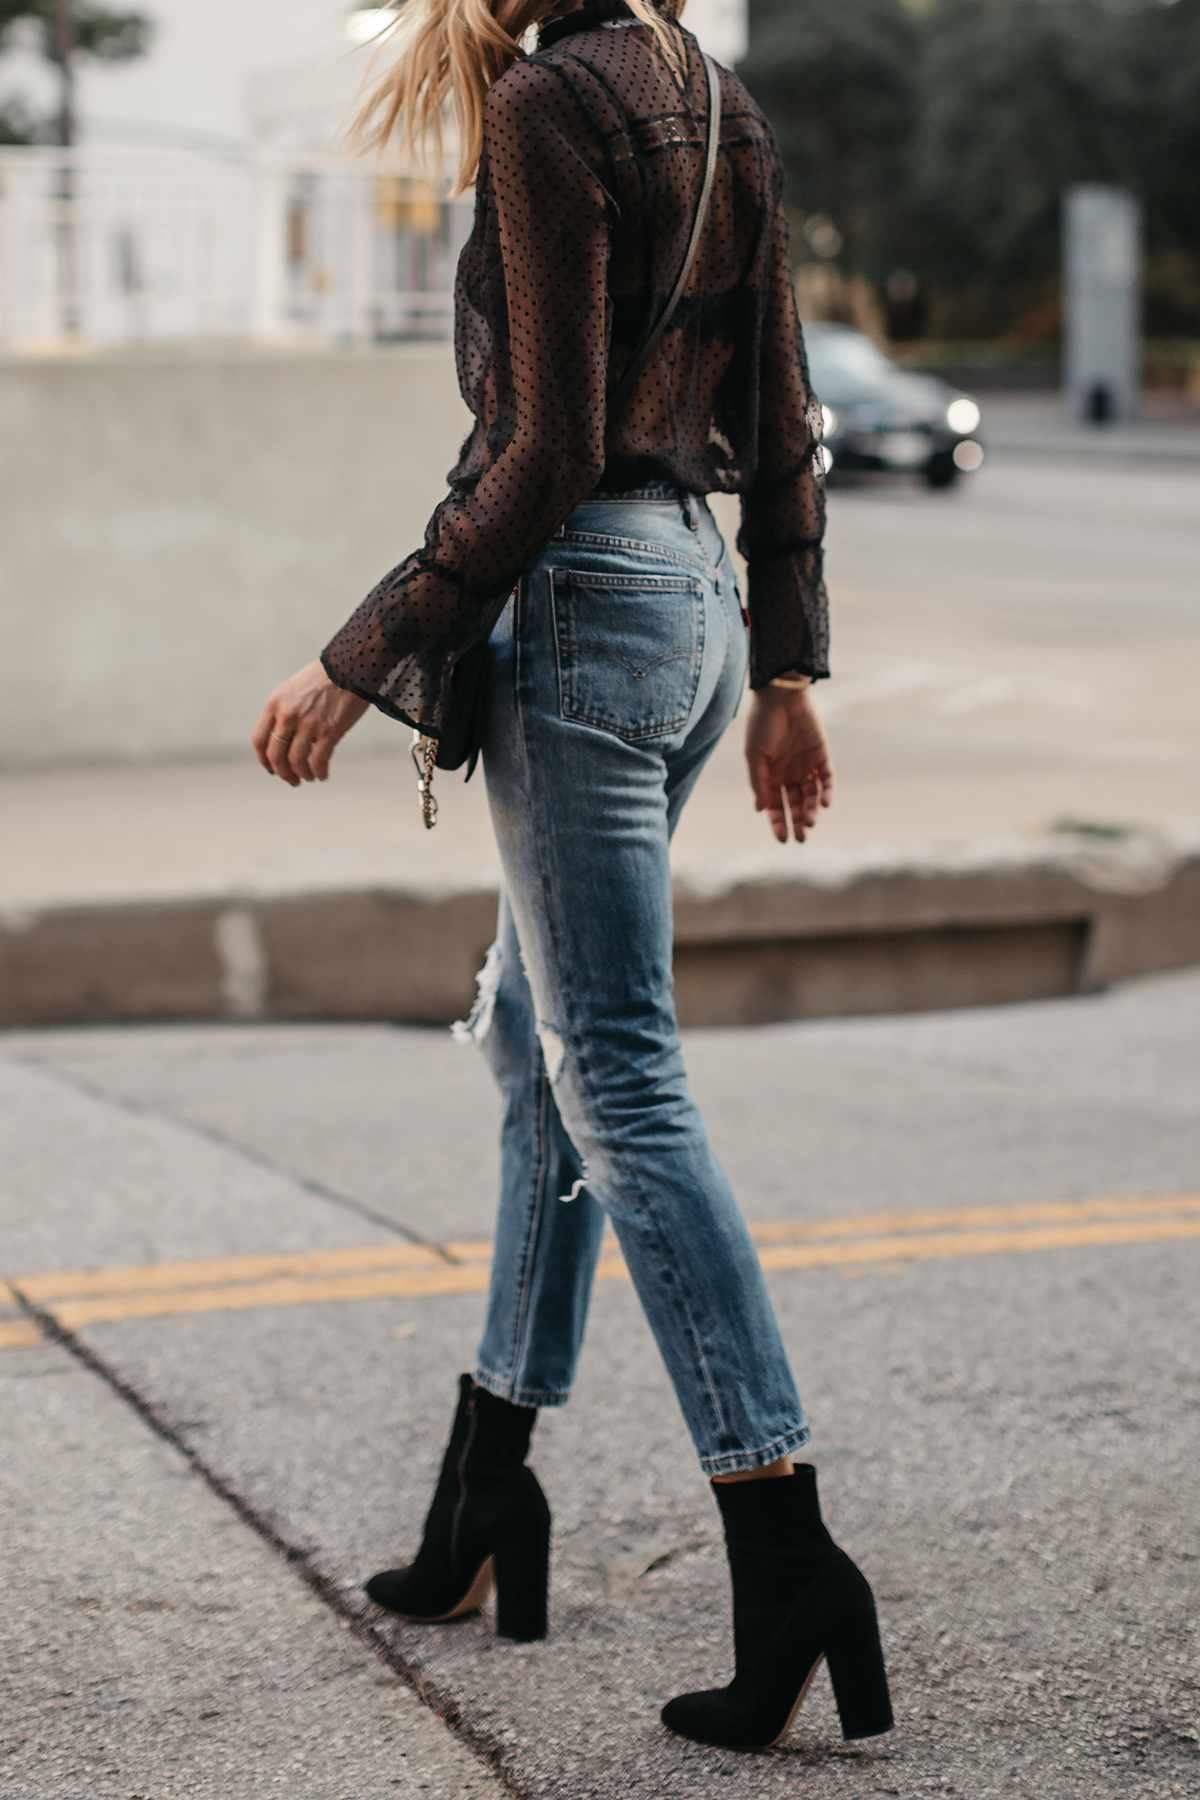 Black Lace Top Levis Denim Jeans Club Monaco Black Ankle Booties Fashion Jackson Dallas Blogger Fashion Blogger Street Style